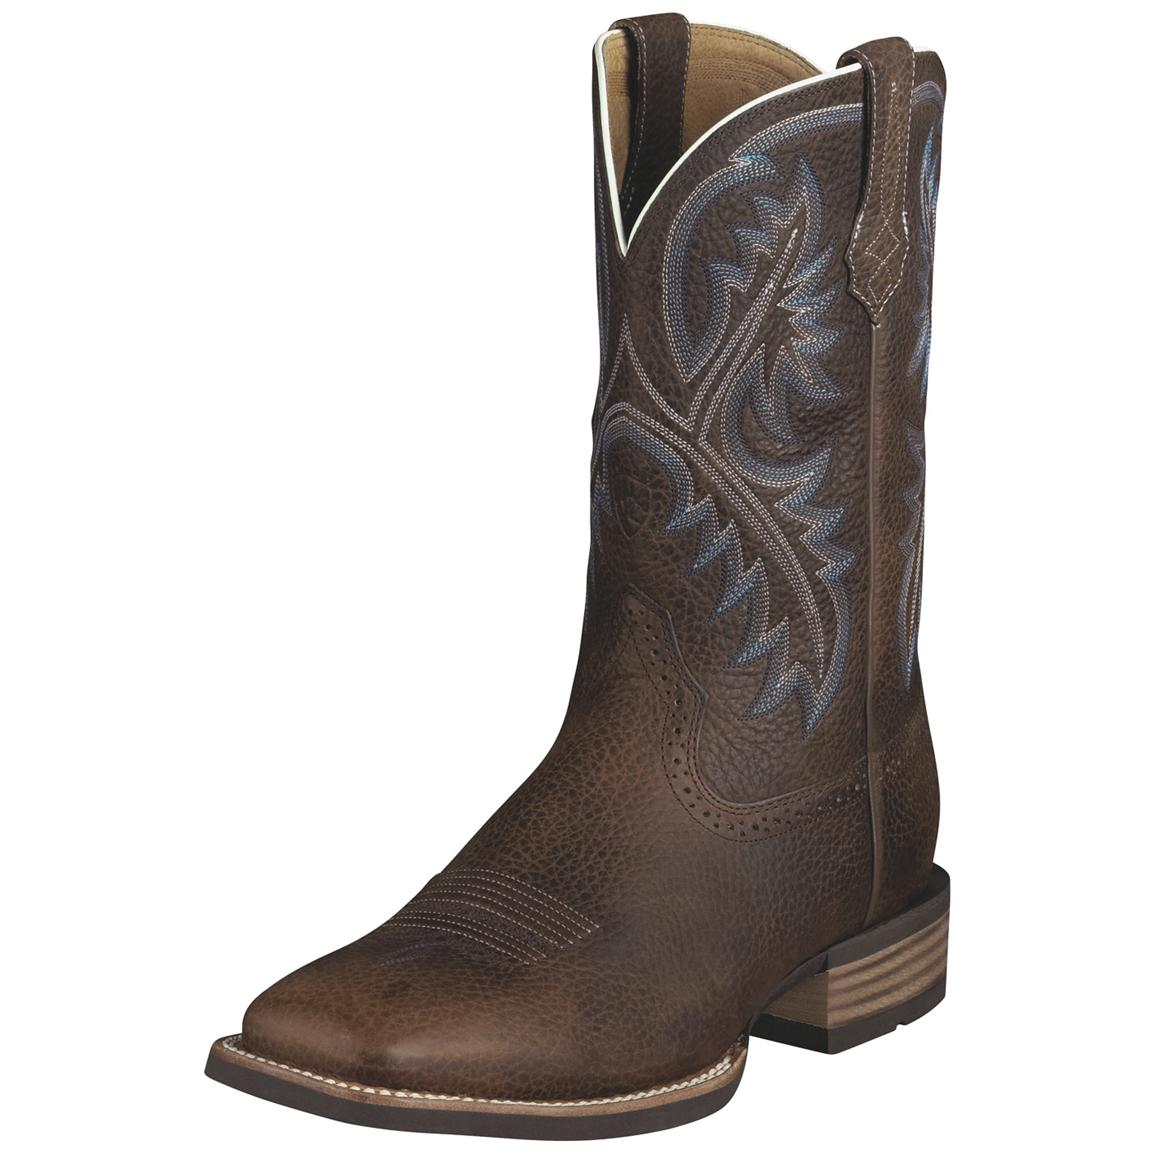 Men's Ariat® 11 inch Quickdraw Western Boots, Brown Oiled